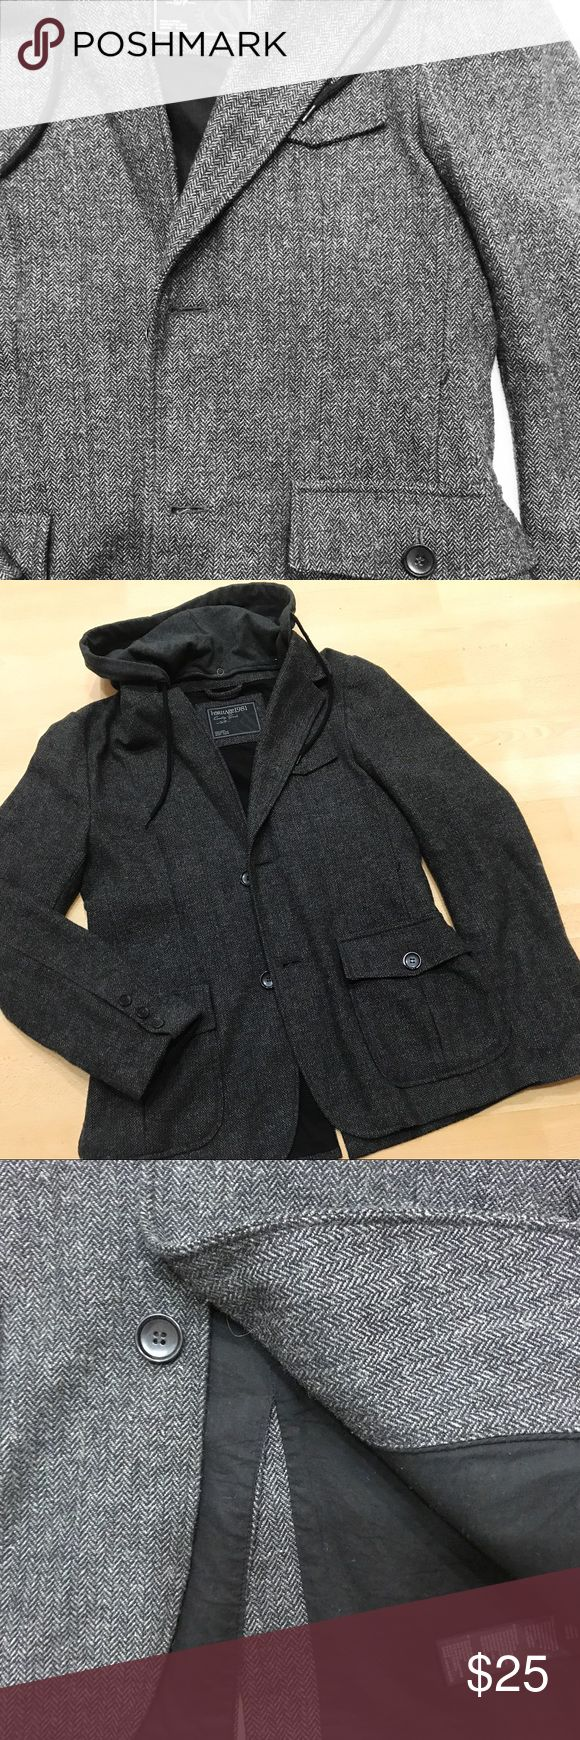 Dark Grey Pea Coat Mens heather grey patterned Pea Coat with jersey hoodie attached. Hoodie is removable. Functional inner & outer pockets. Size small. Worn twice. Brand spanking new practically! Heritage Jackets & Coats